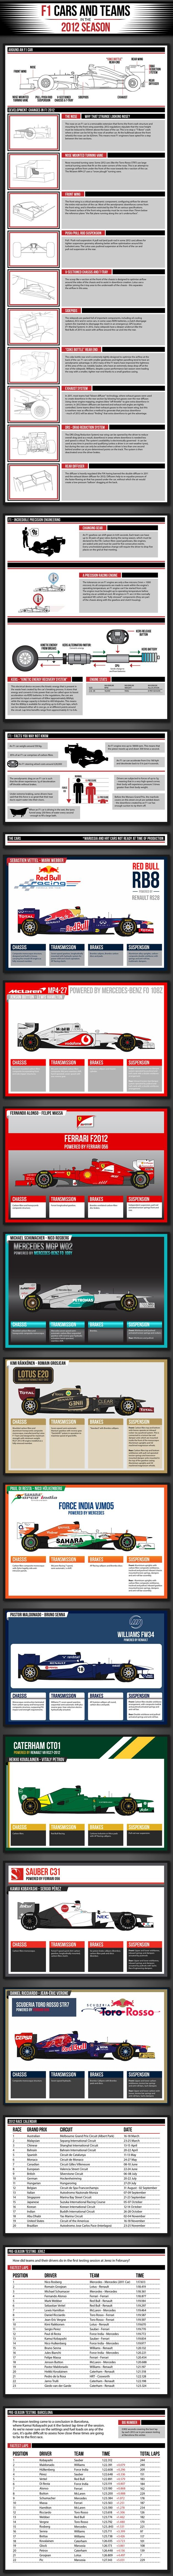 Infographic breaks down the intricacies of Formula 1 in 2012